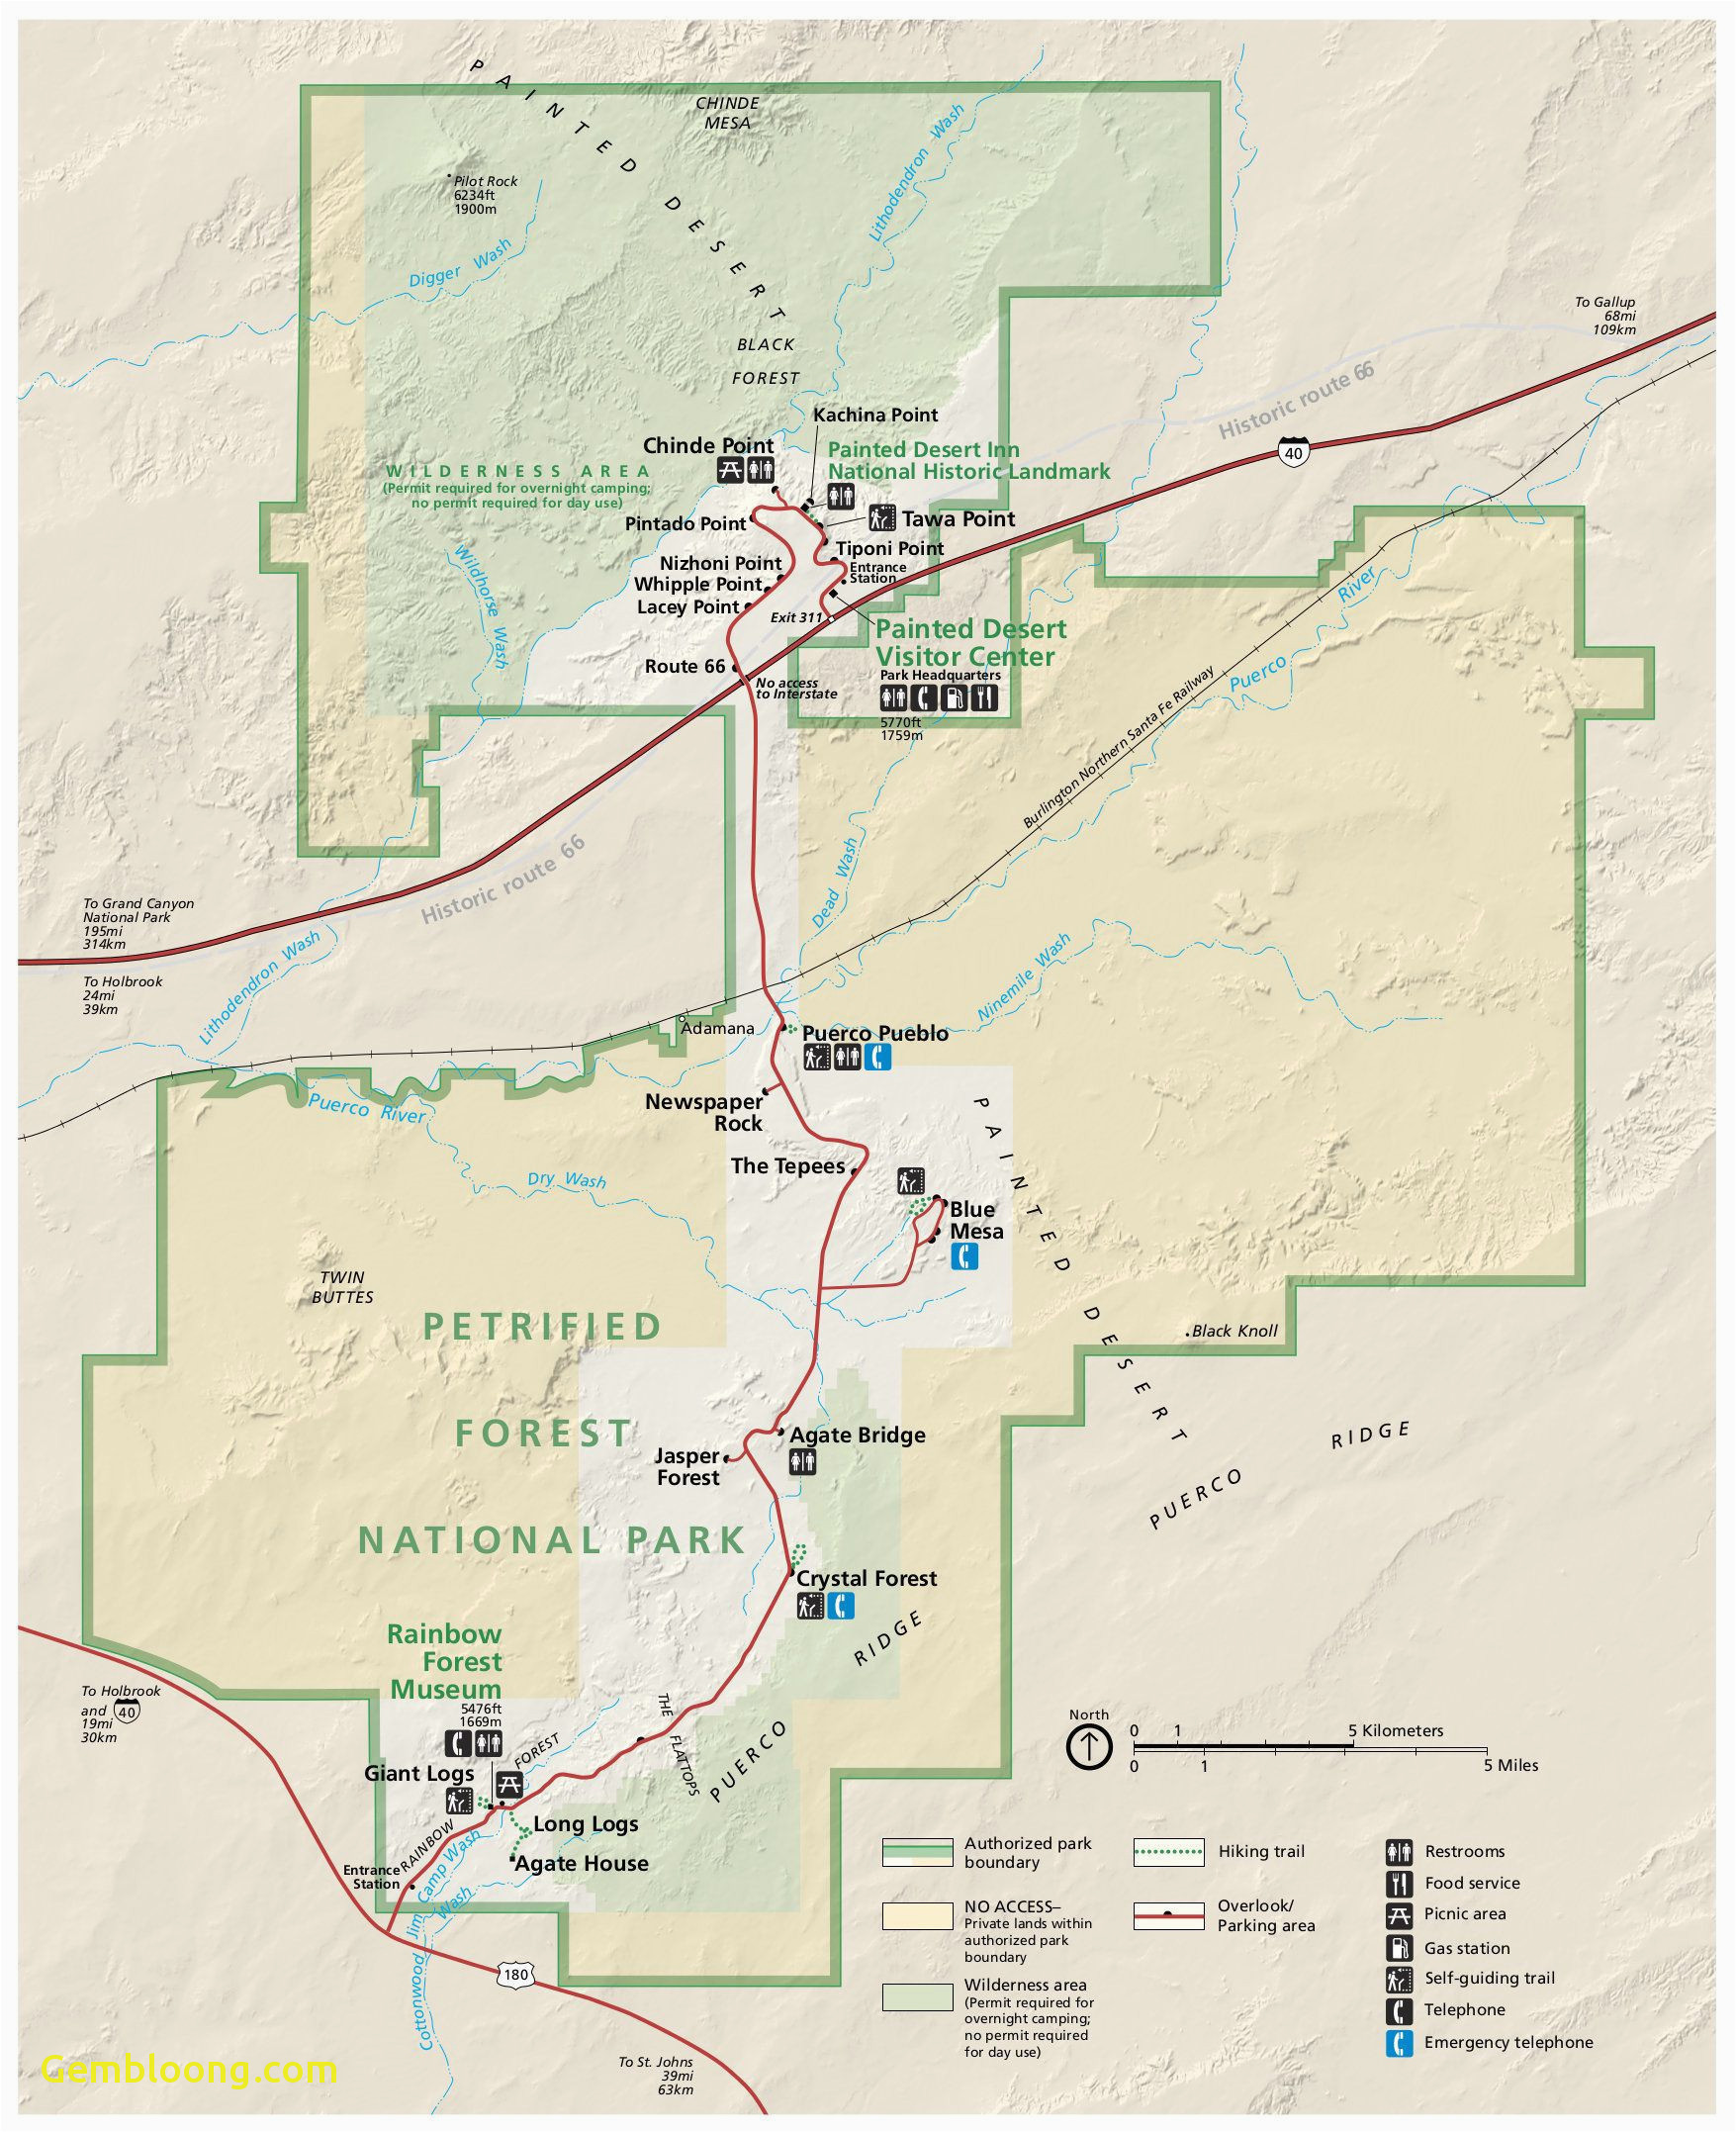 California State Park Camping Map National Parks Western Us Map - Us-camping-map